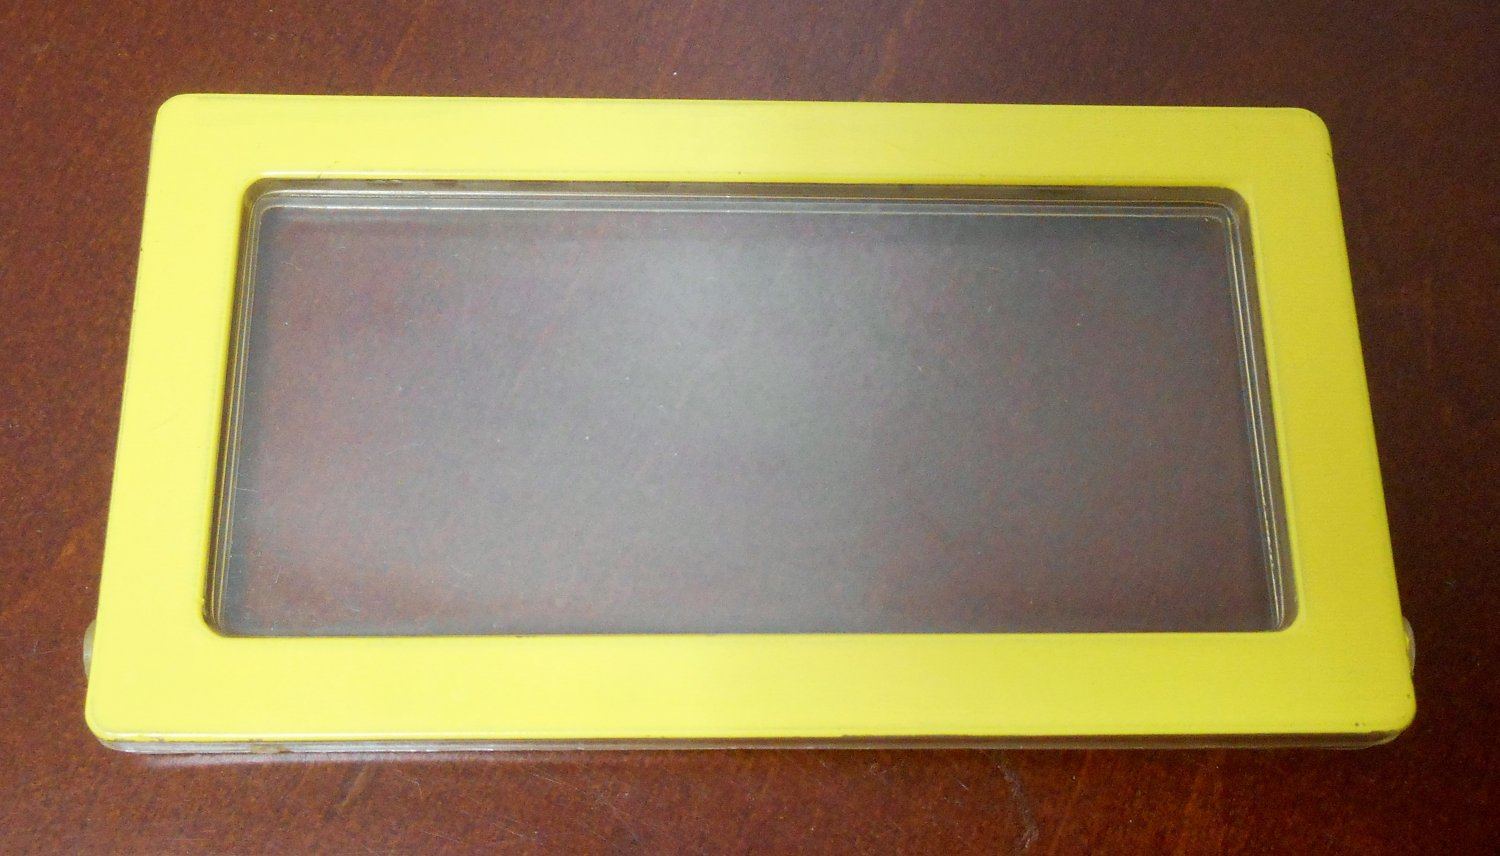 Yellow 3½ x 2 Replacement Window 2588-2339 Barbie A Frame Dream Doll House Dollhouse Parts Mattel